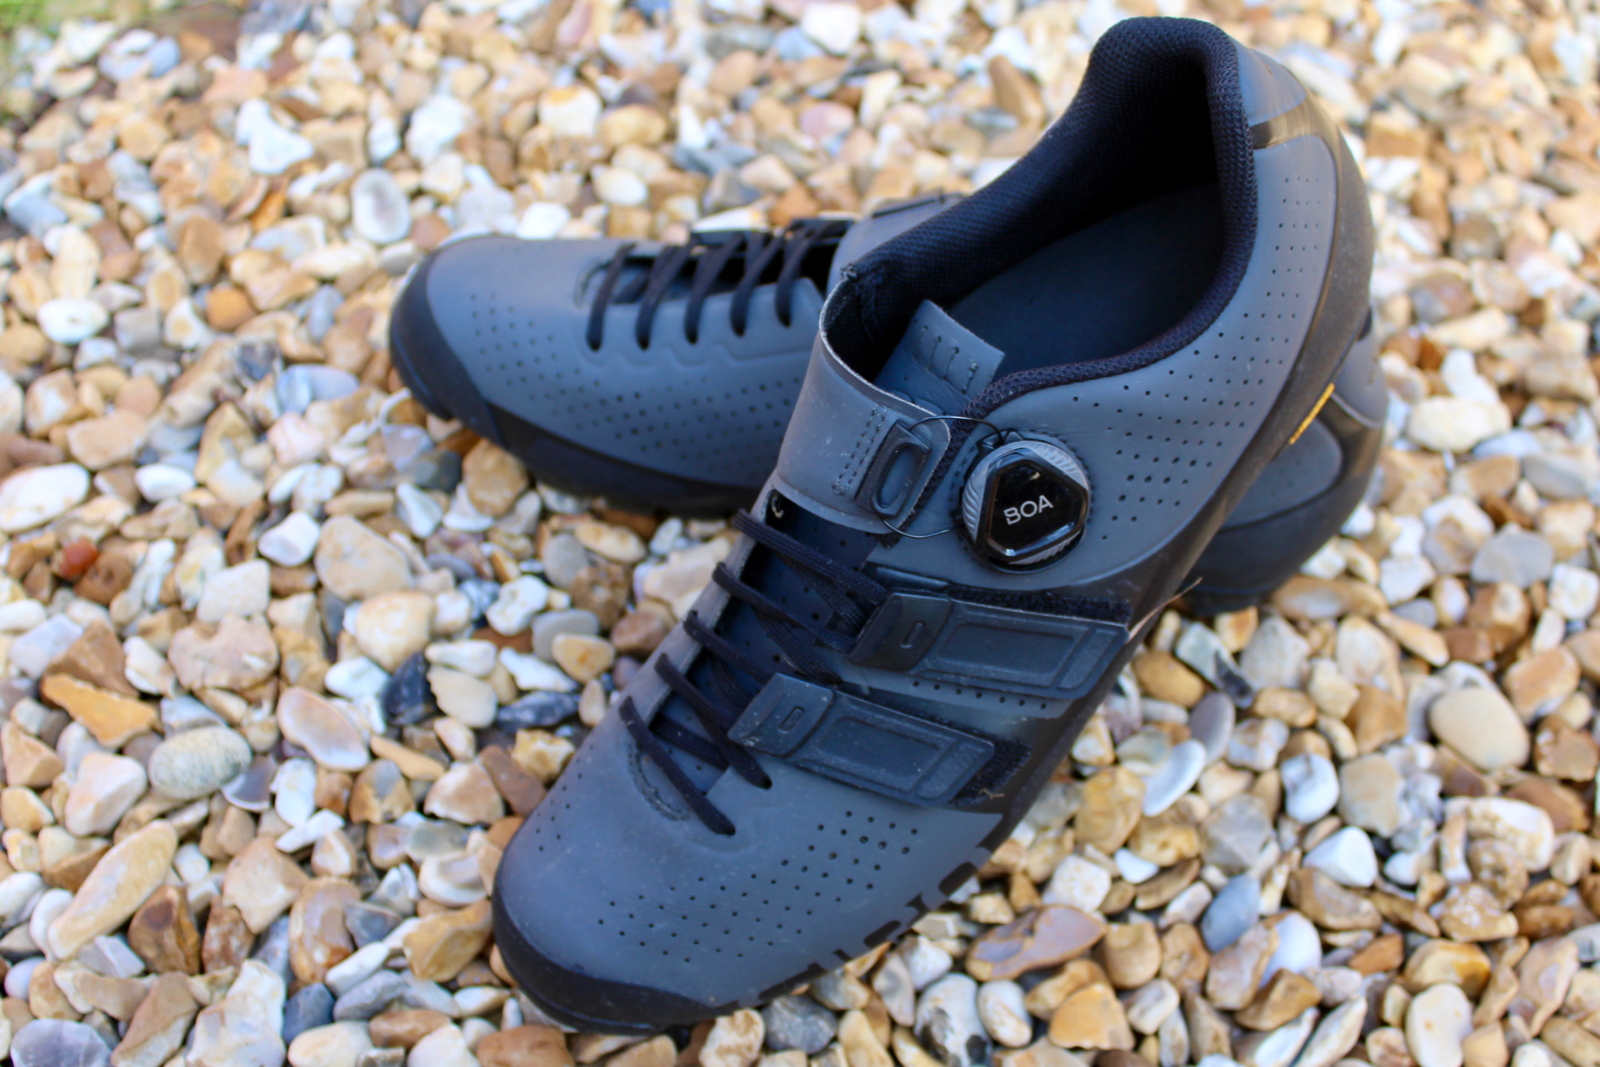 Giro Code Techlace MTB Shoes Review